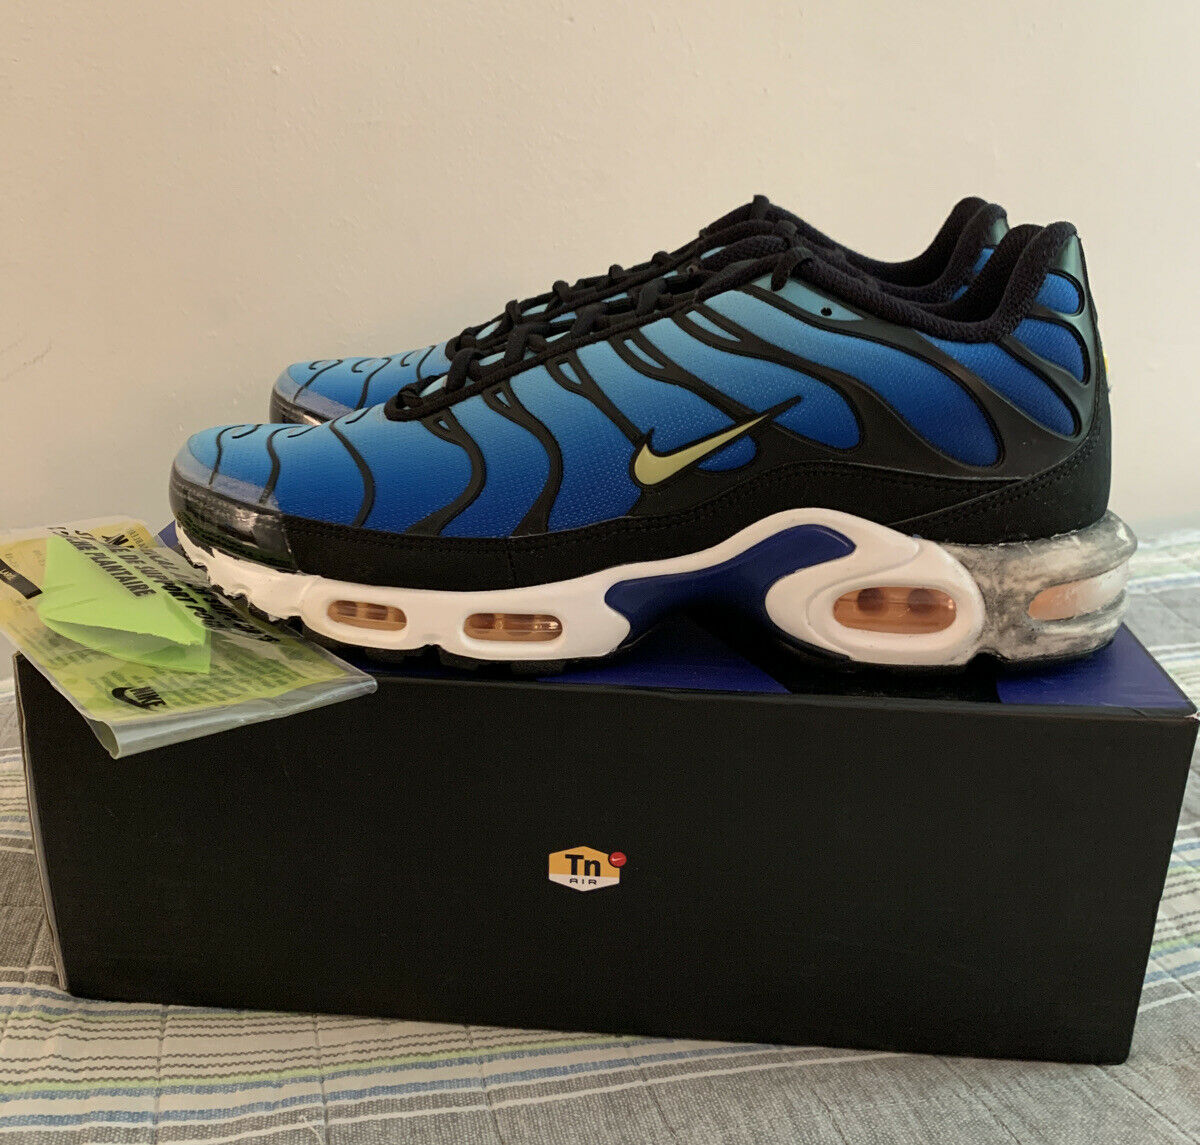 Nike Air Max Plus OG Hyper Blue 2018